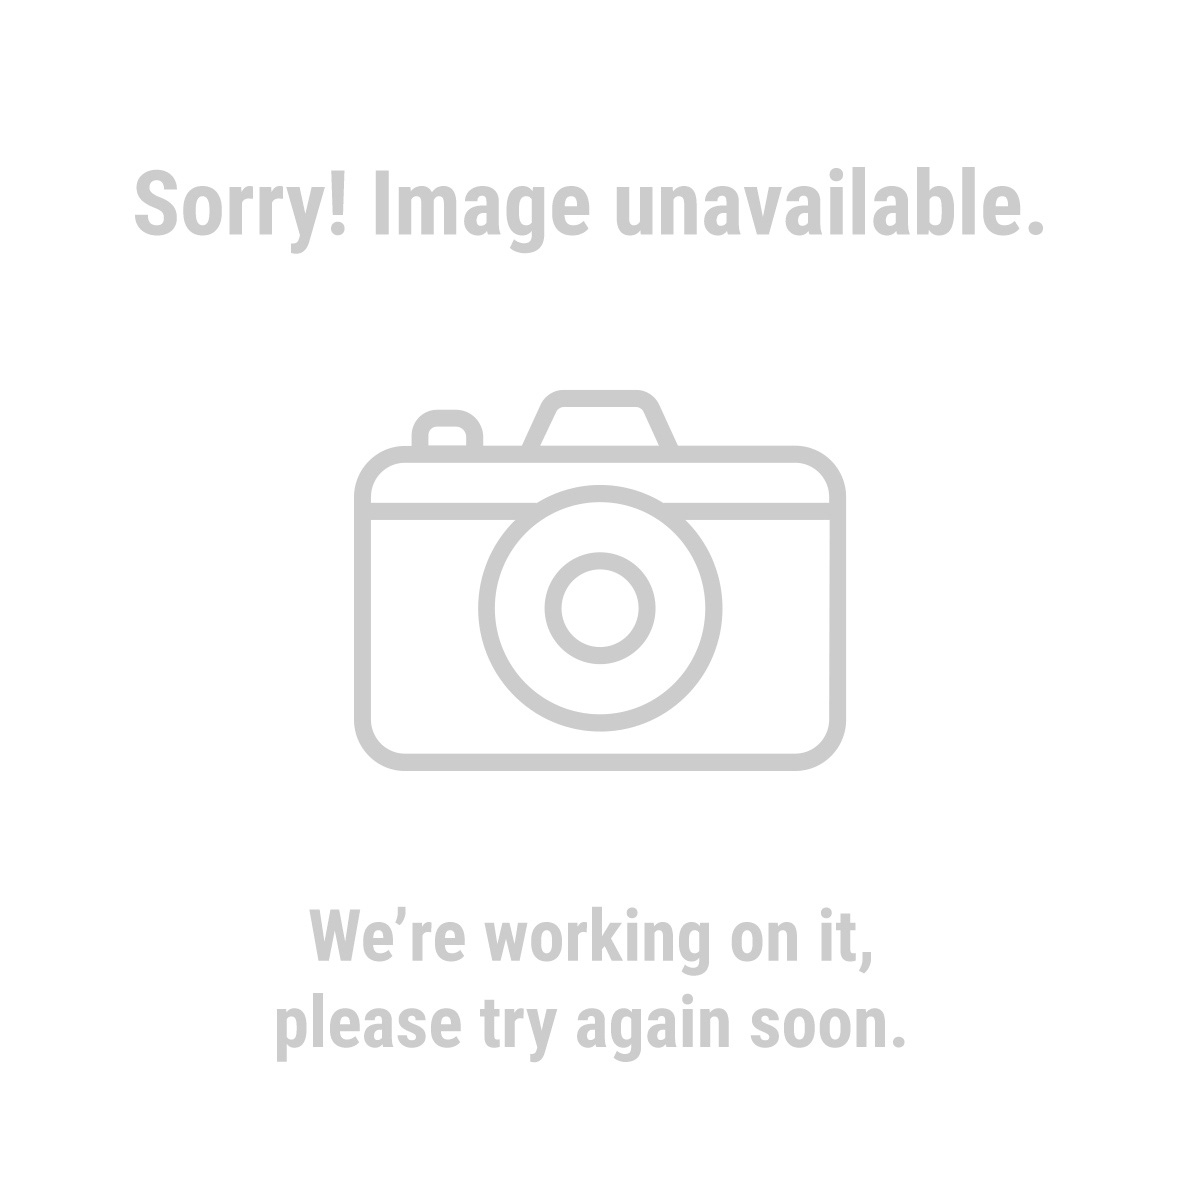 HFT® 69209 5 ft. 6 in. x 7 ft. 6 in. Silver/Heavy Duty Reflective All Purpose/Weather Resistant Tarp